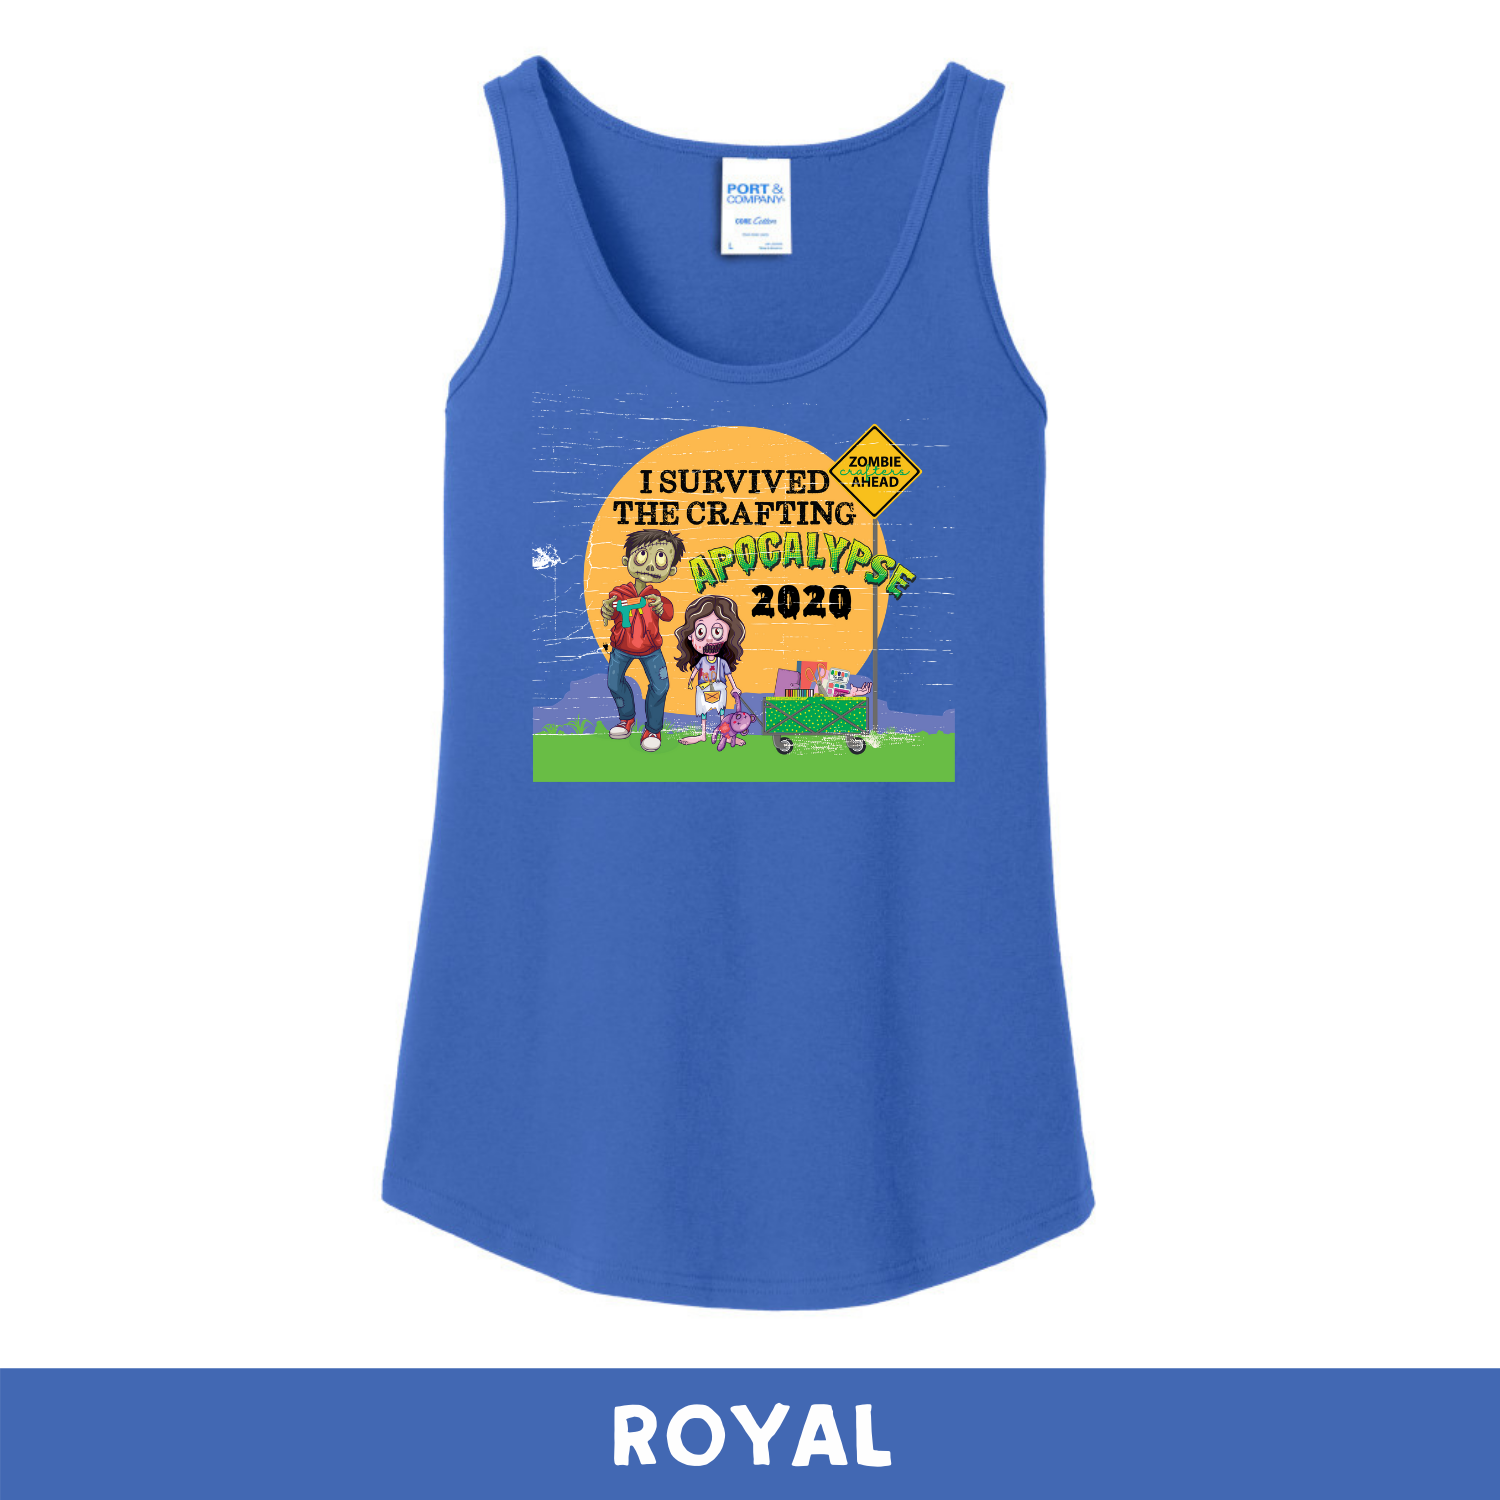 Royal -  Woman's Cut Tank Top - I Survived The 2020 Crafting Apocalypse